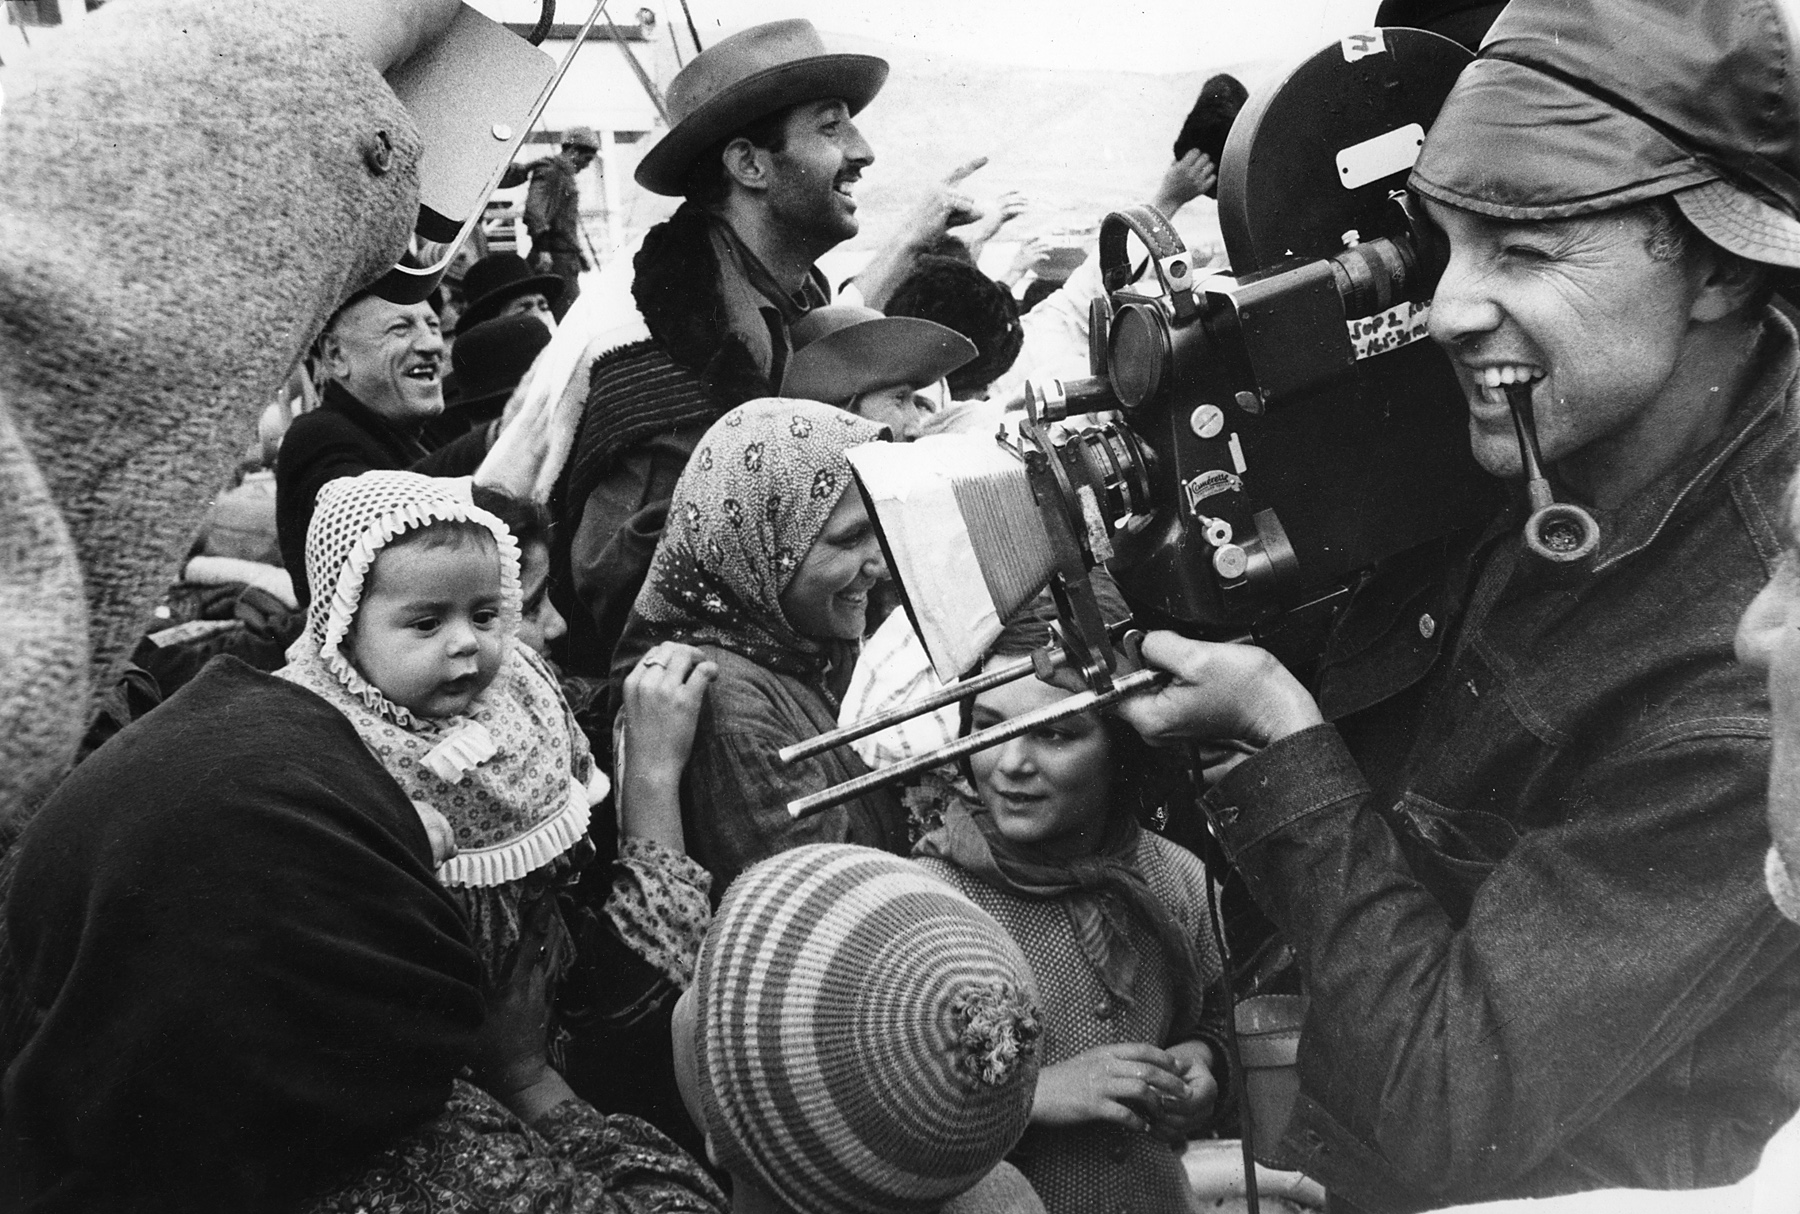 Haskell Wexler at work on Elia Kazan's America, America.